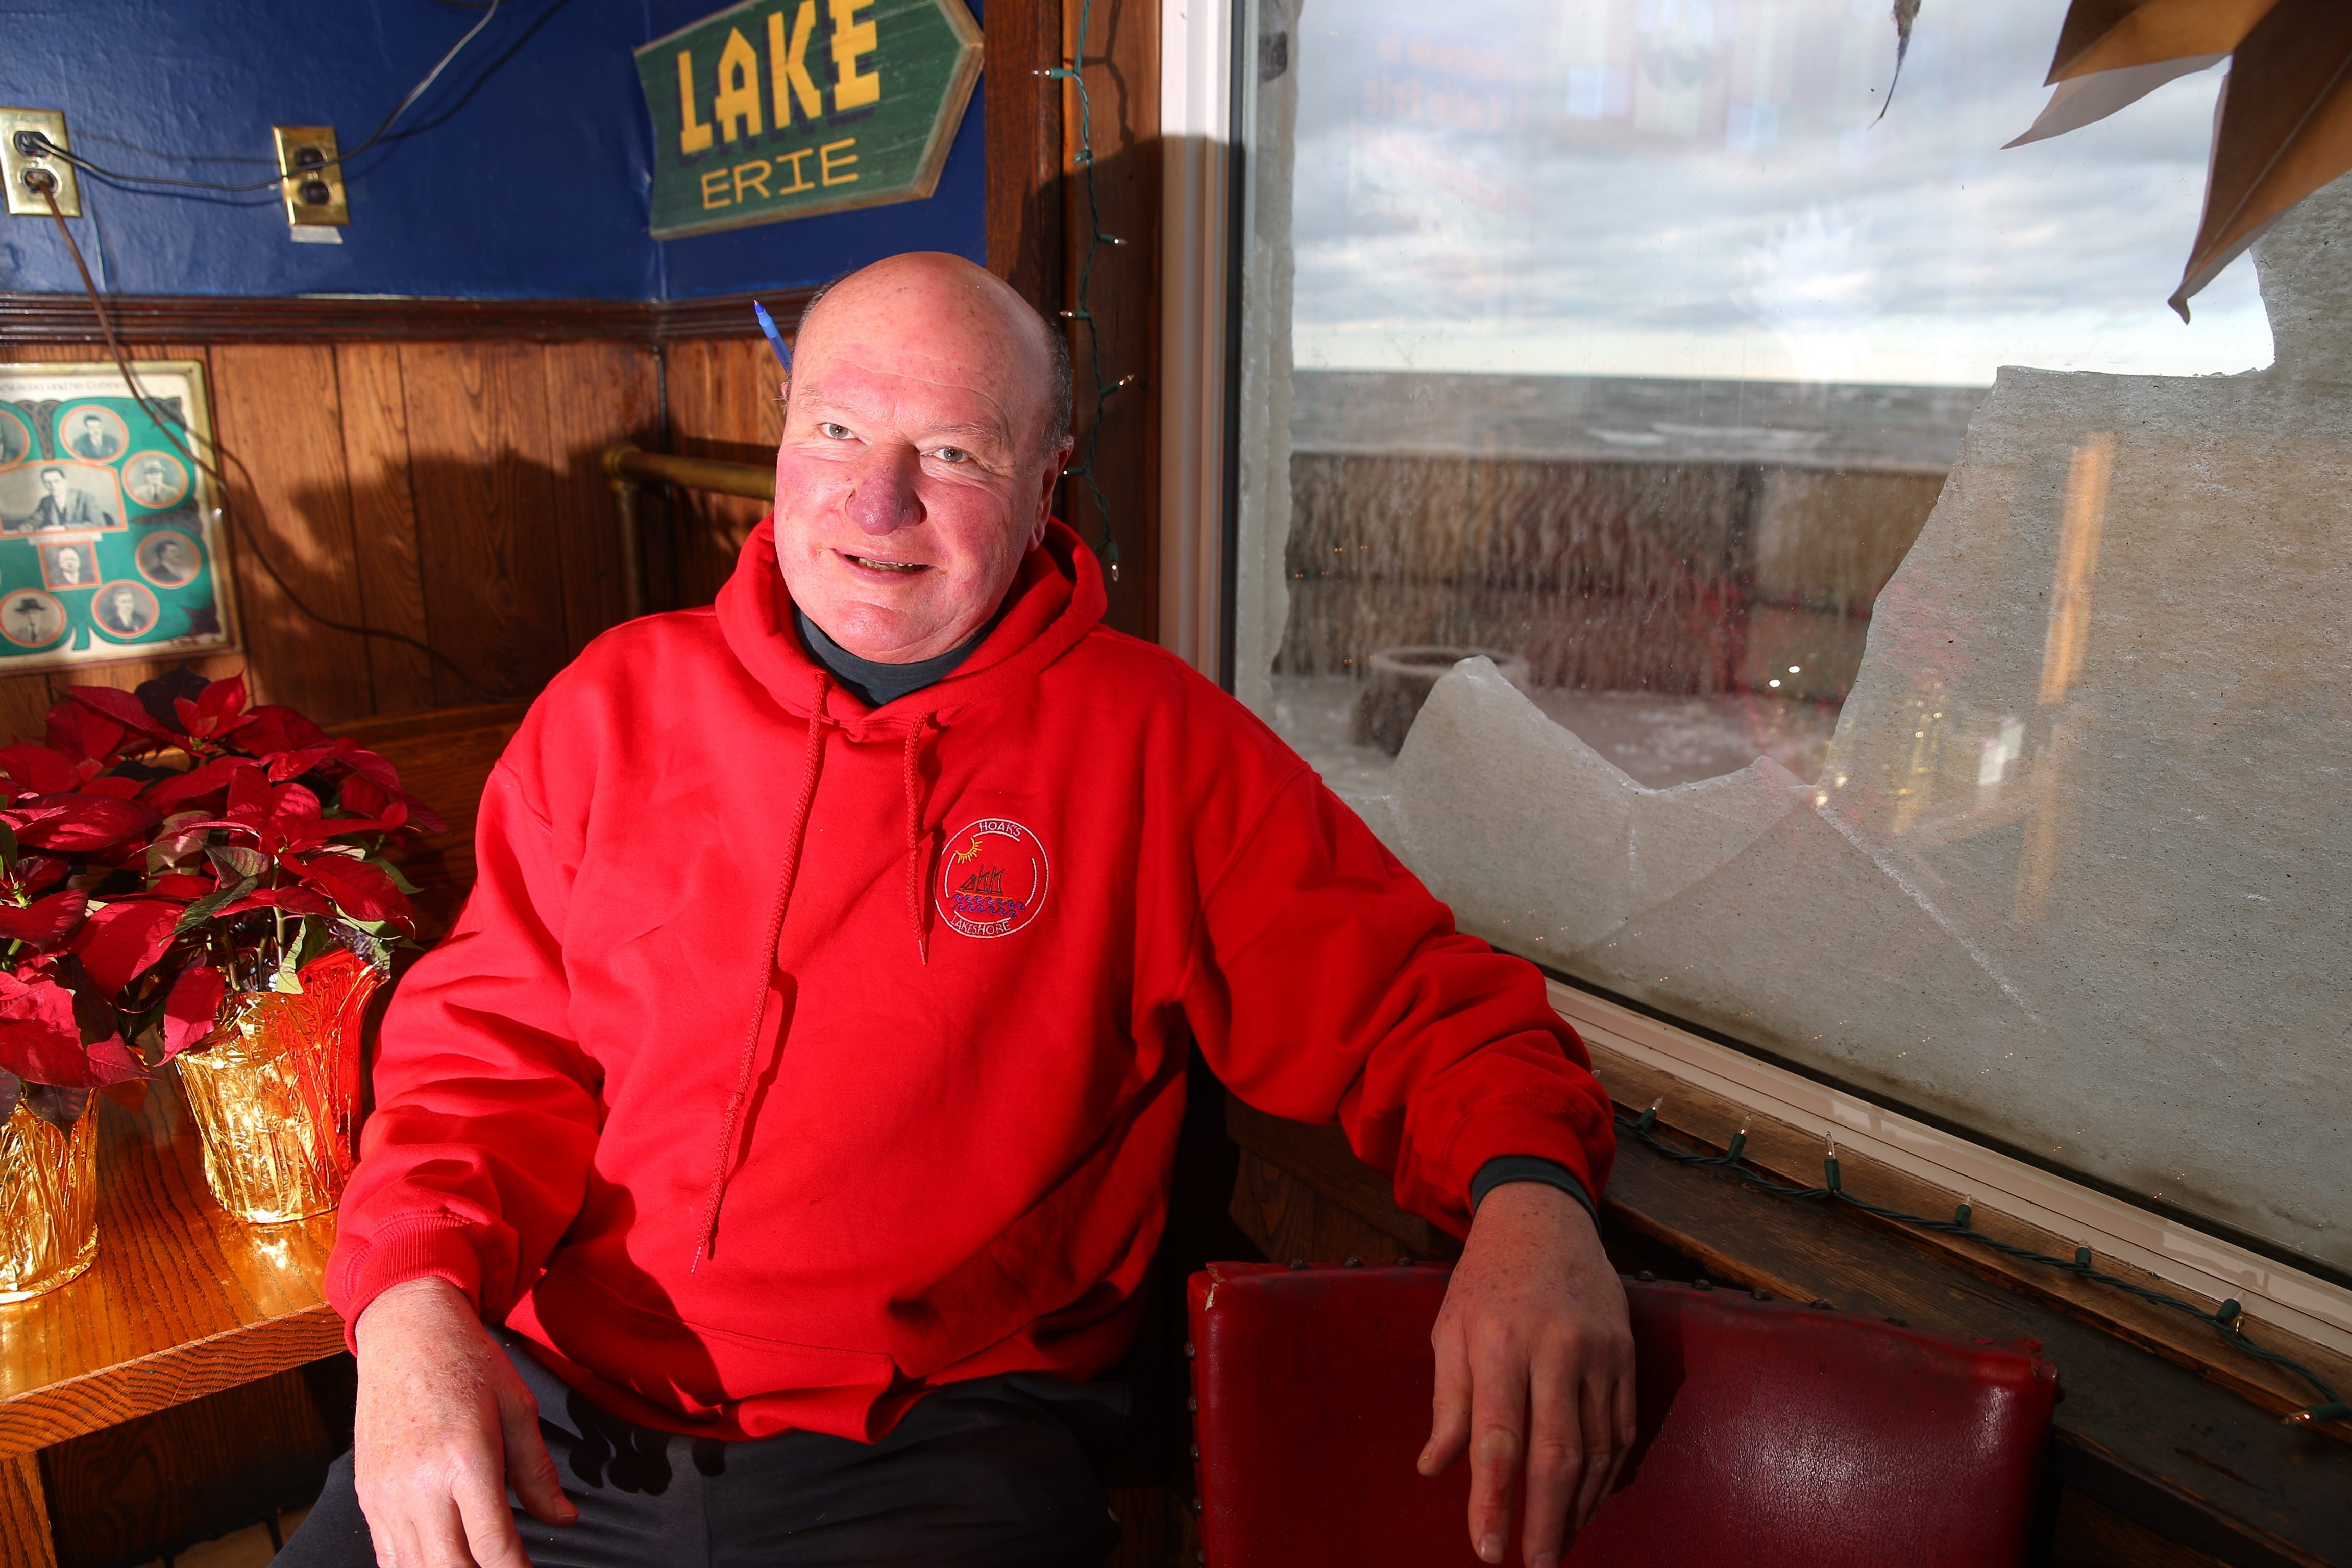 For Edward Hoak, owner of Hoak's restaurant in  Hamburg, bad weather can be the enemy of his business. He says he watches the weather closely while keeping an eye on his restaurant.